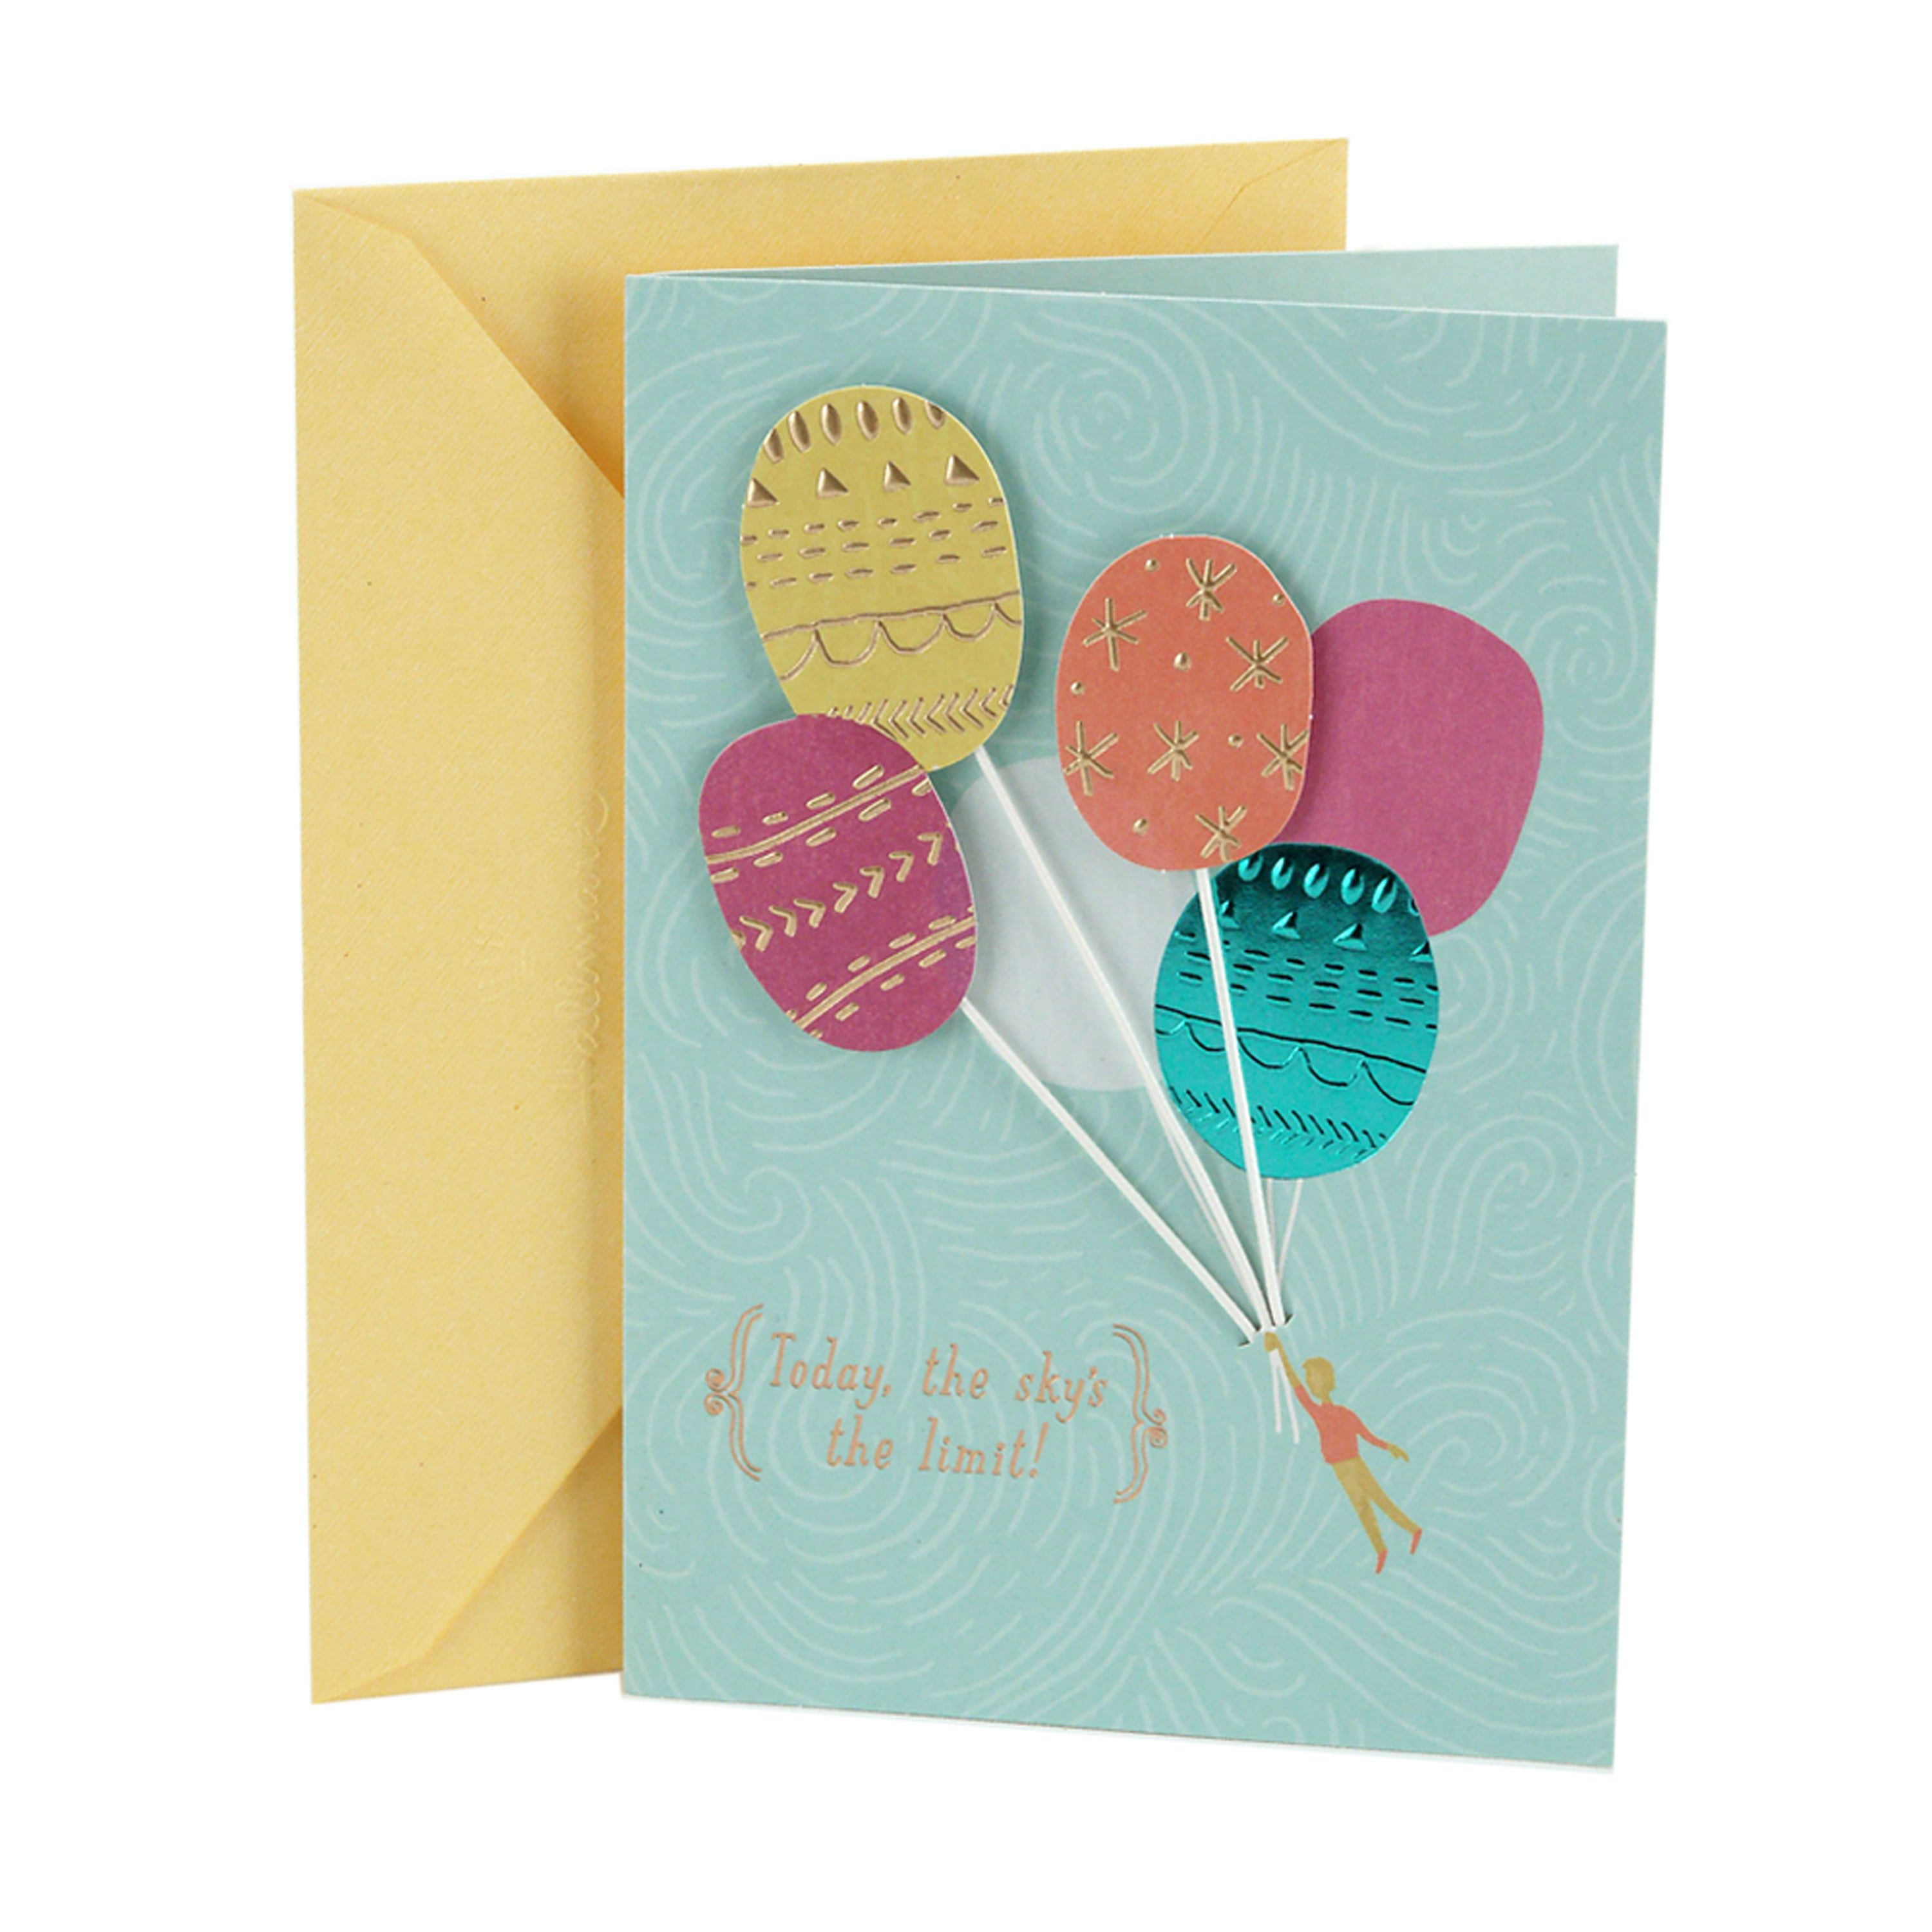 Hallmark Birthday Greeting Card (Balloons)